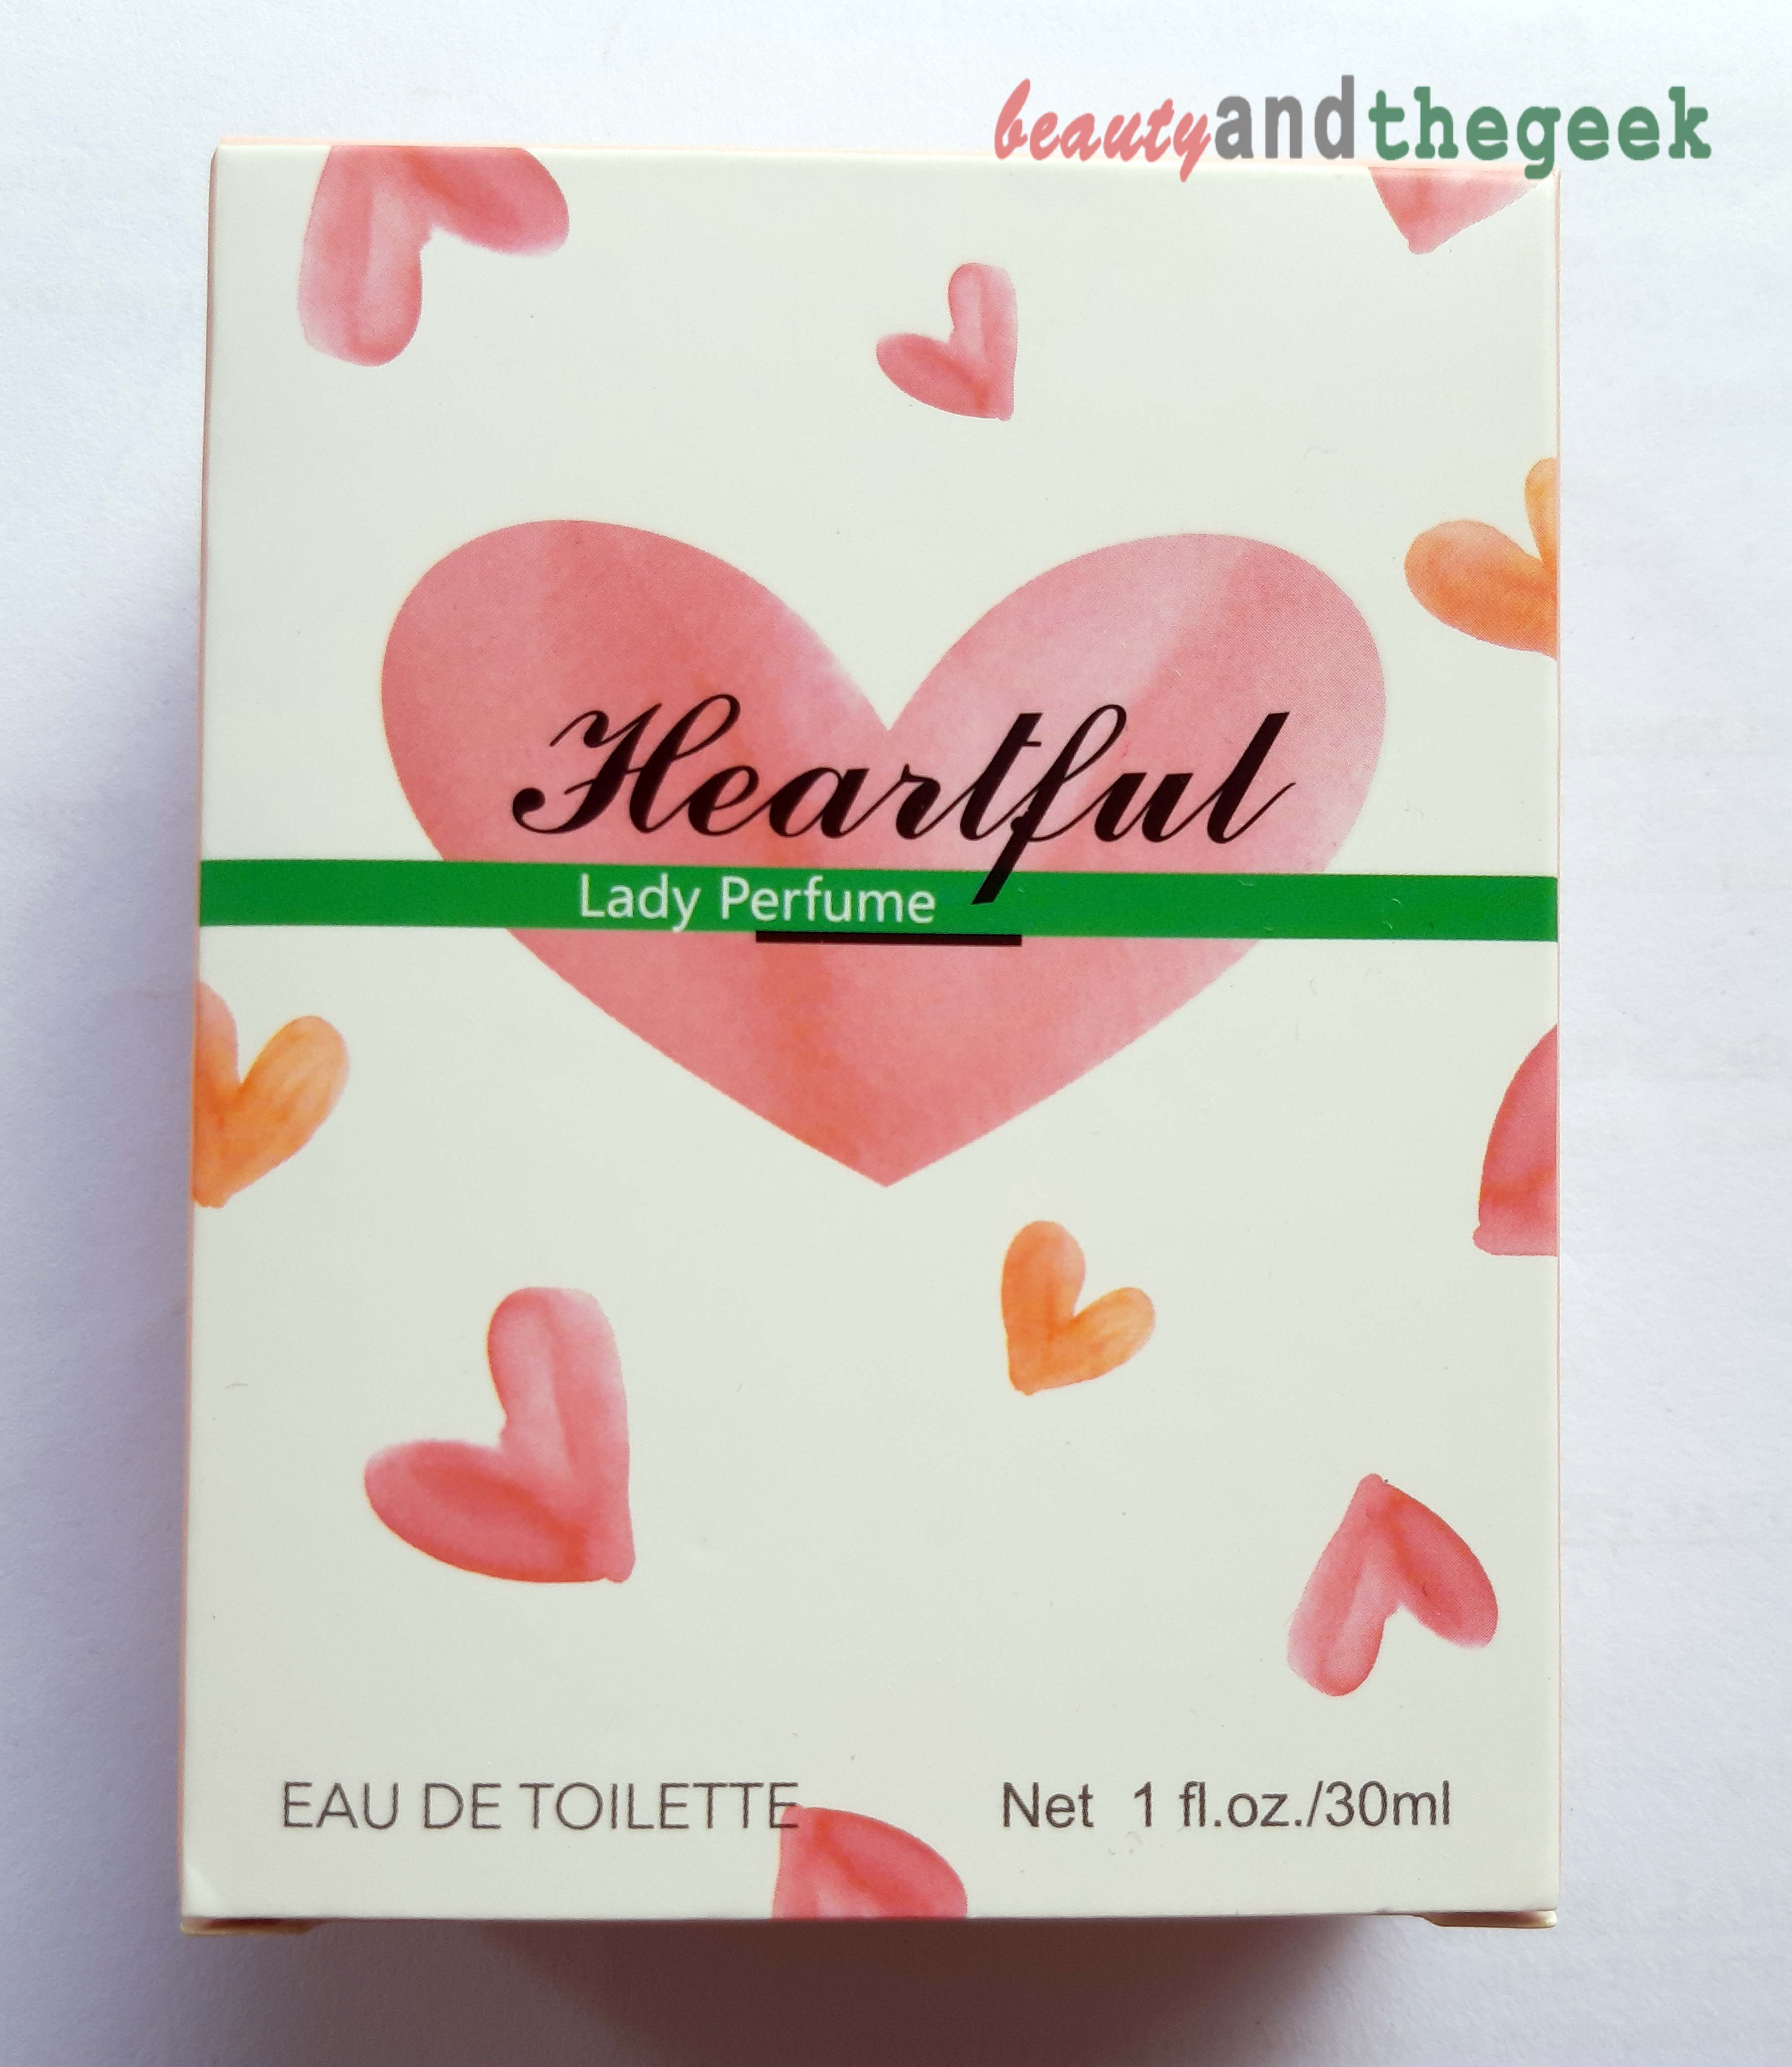 Miniso Heartful Lady Perfume Eau-De-Toilette packaging